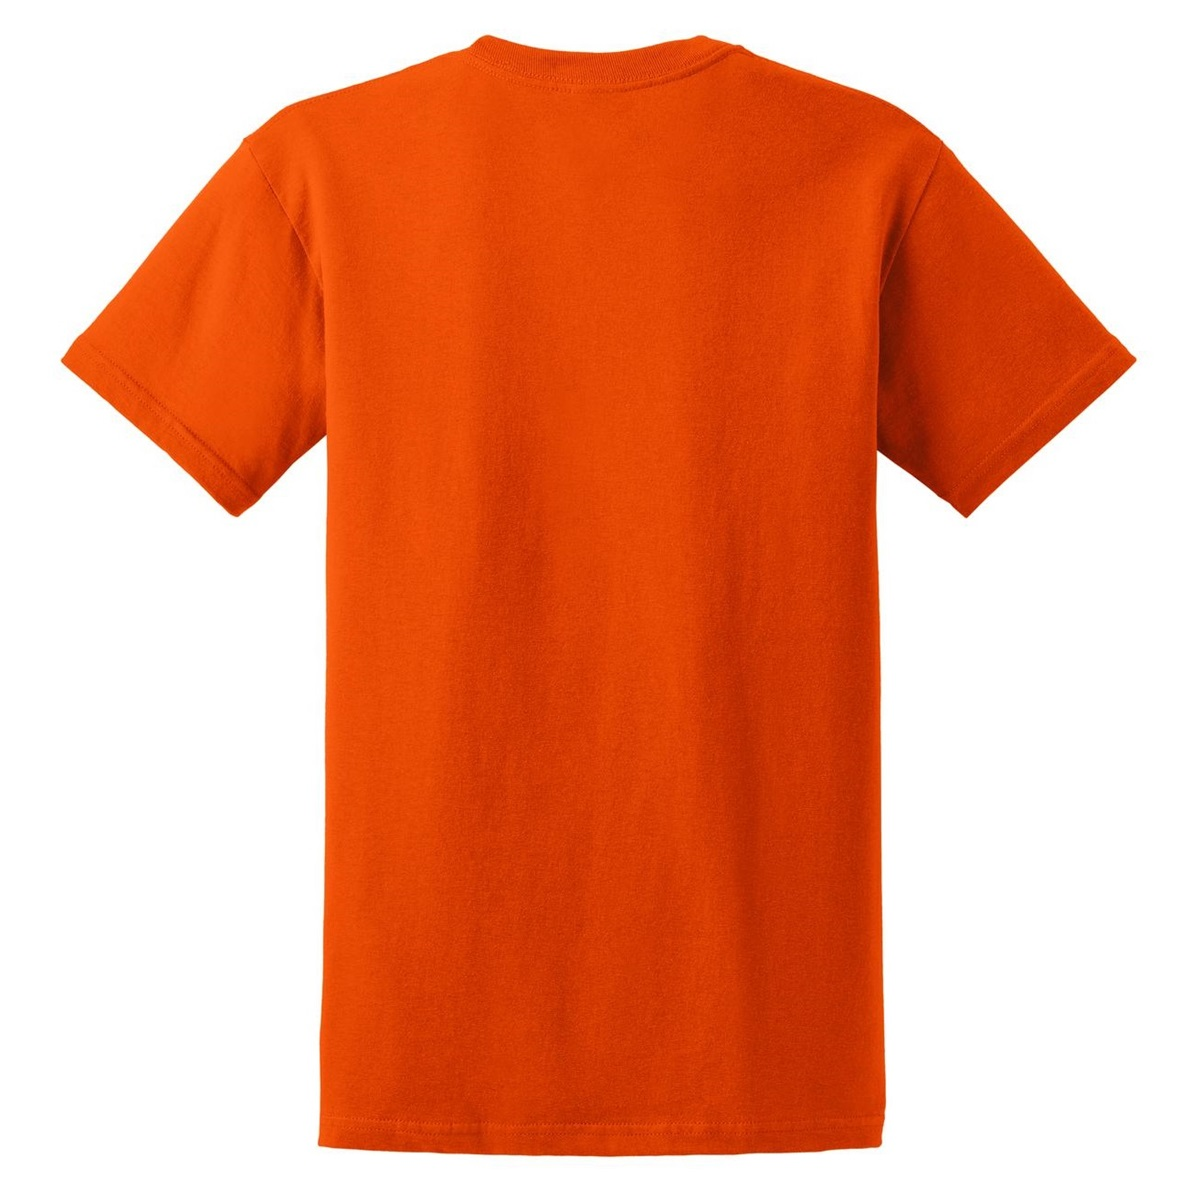 Orange t shirts design your own custom t shirts for Custom t shirts design your own